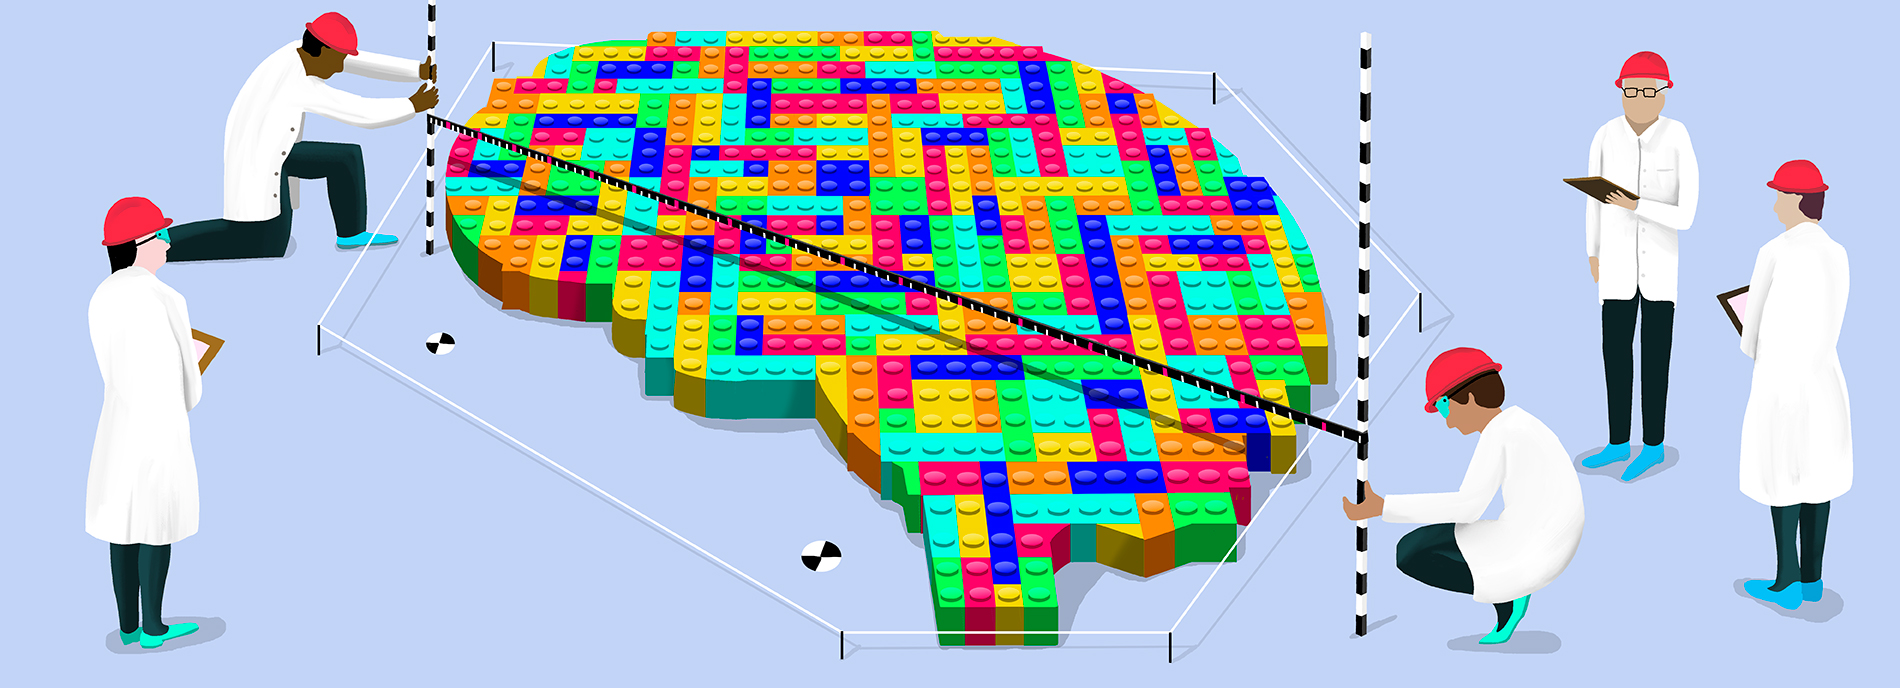 researchers are measuring a big lego brain